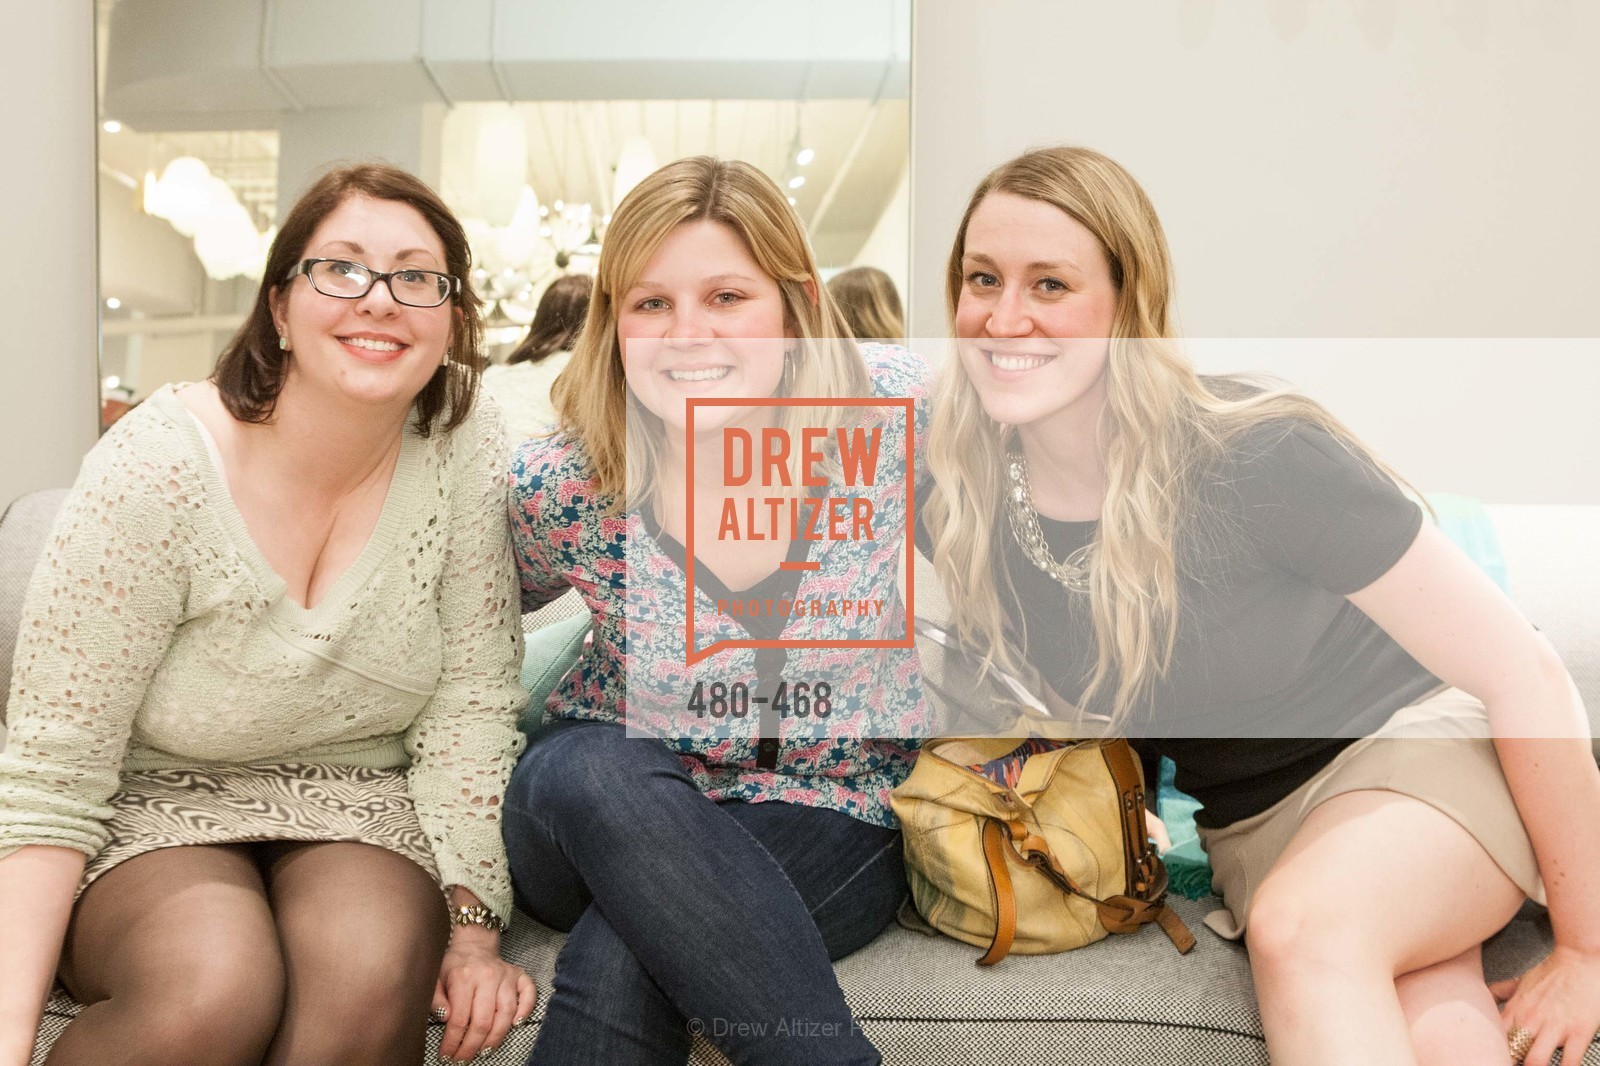 Rebekah Jatovi, Blaire Kruger, Kristin Look, DESIGN WITHIN REACH Studio Opening, US. US, January 21st, 2014,Drew Altizer, Drew Altizer Photography, full-service agency, private events, San Francisco photographer, photographer california